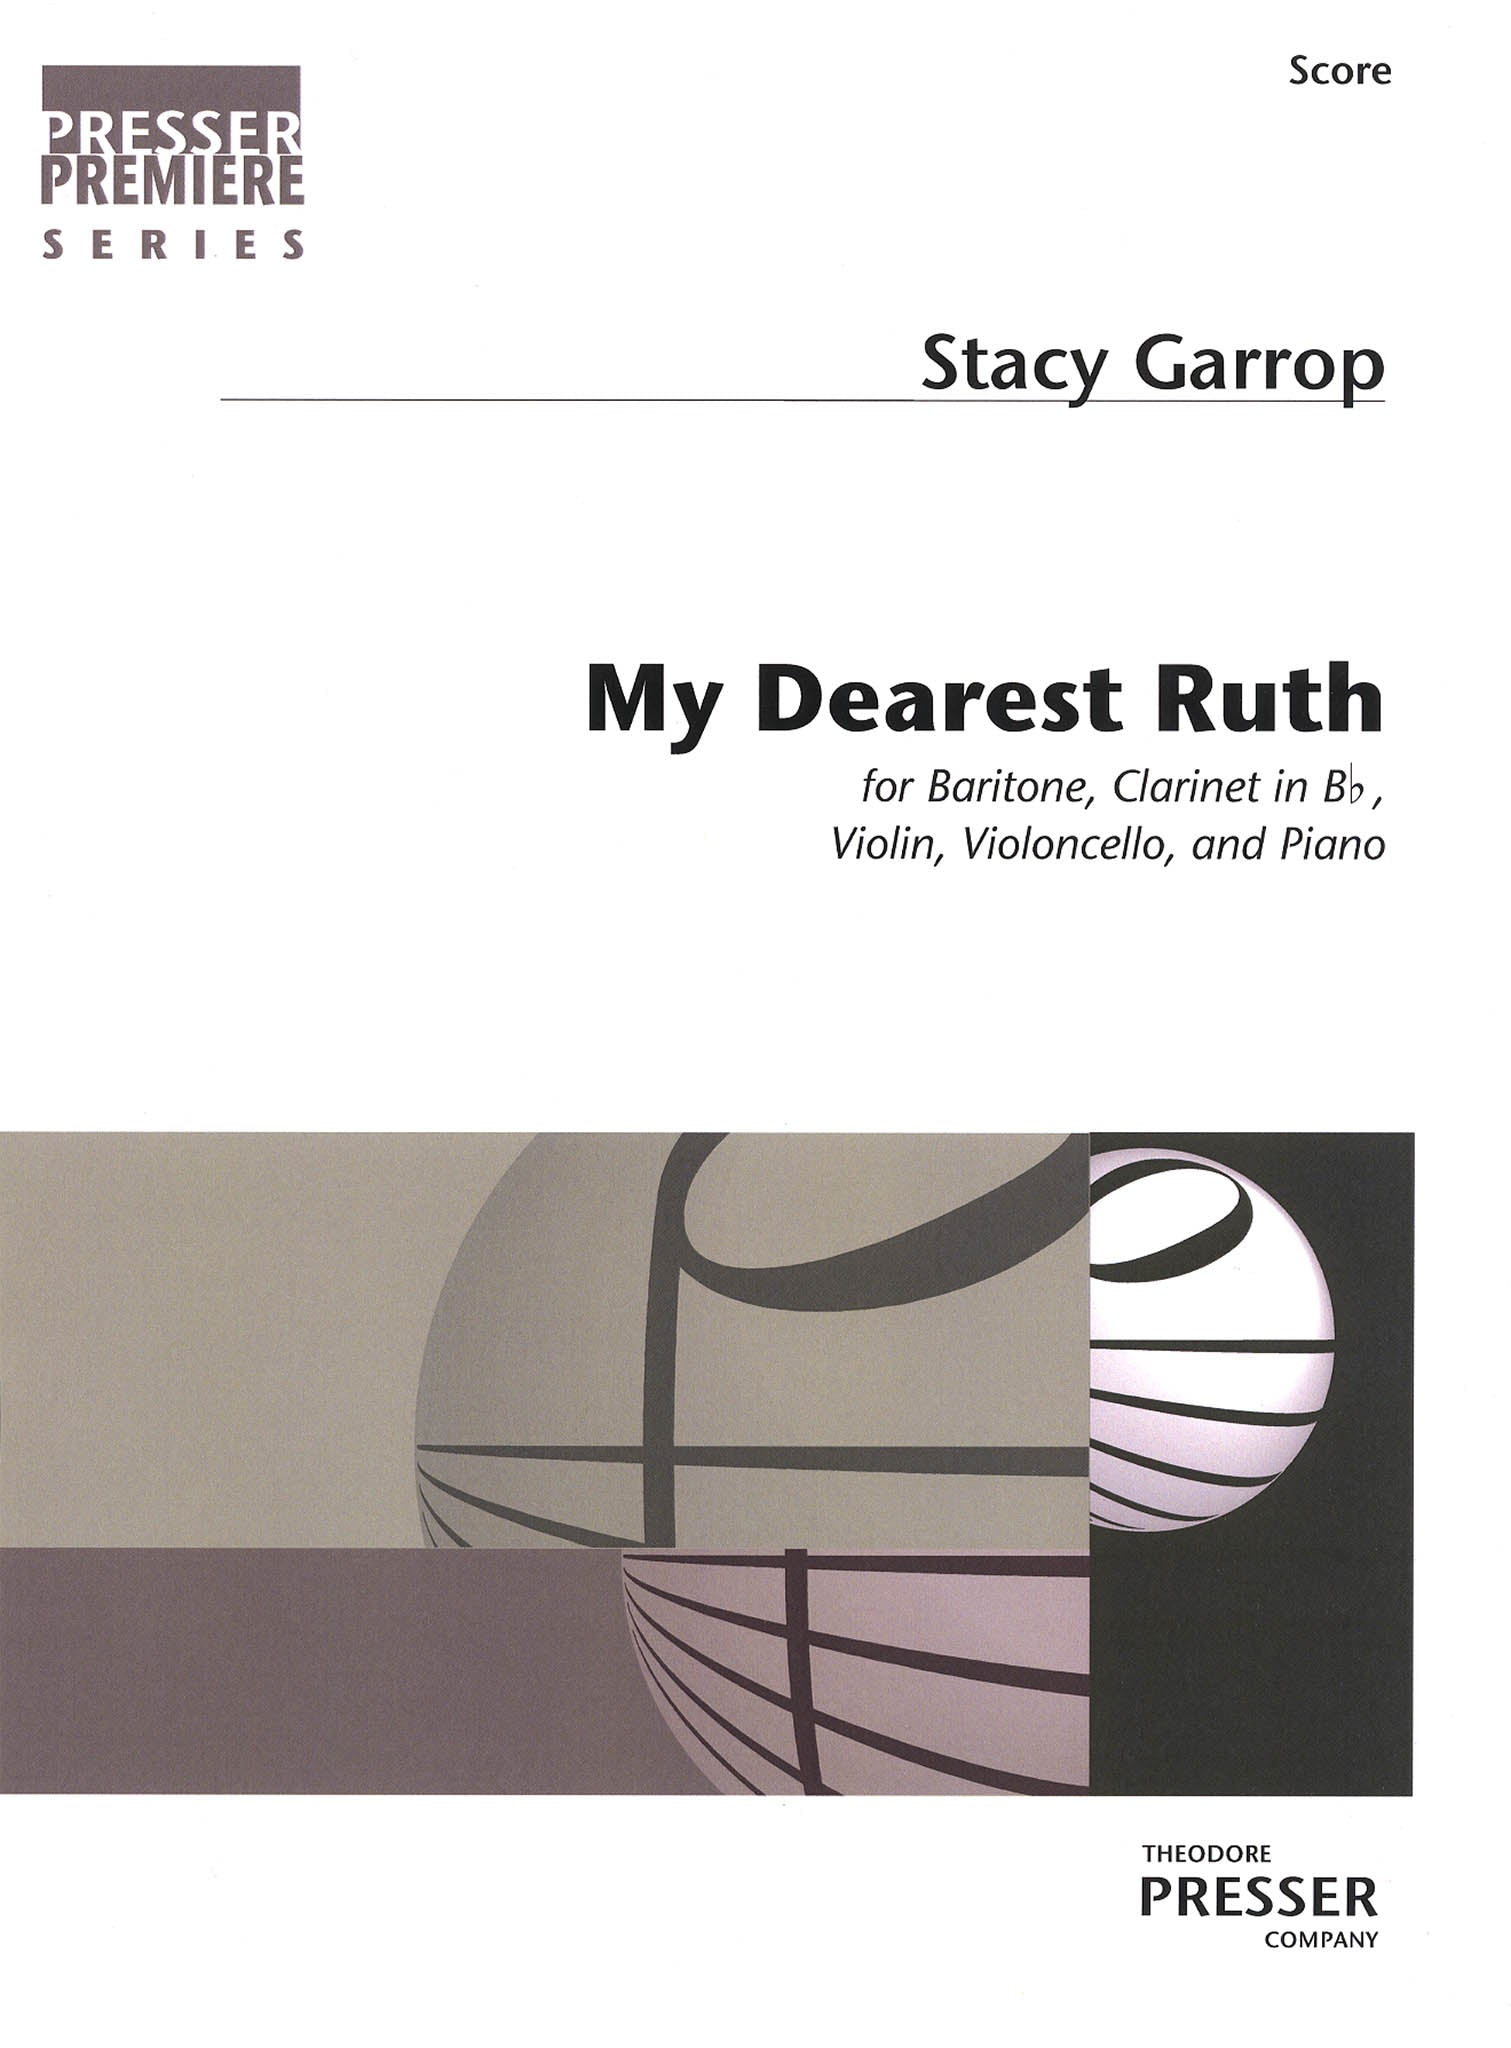 Stacy Garrop My Dearest Ruth for baritone, score Cover